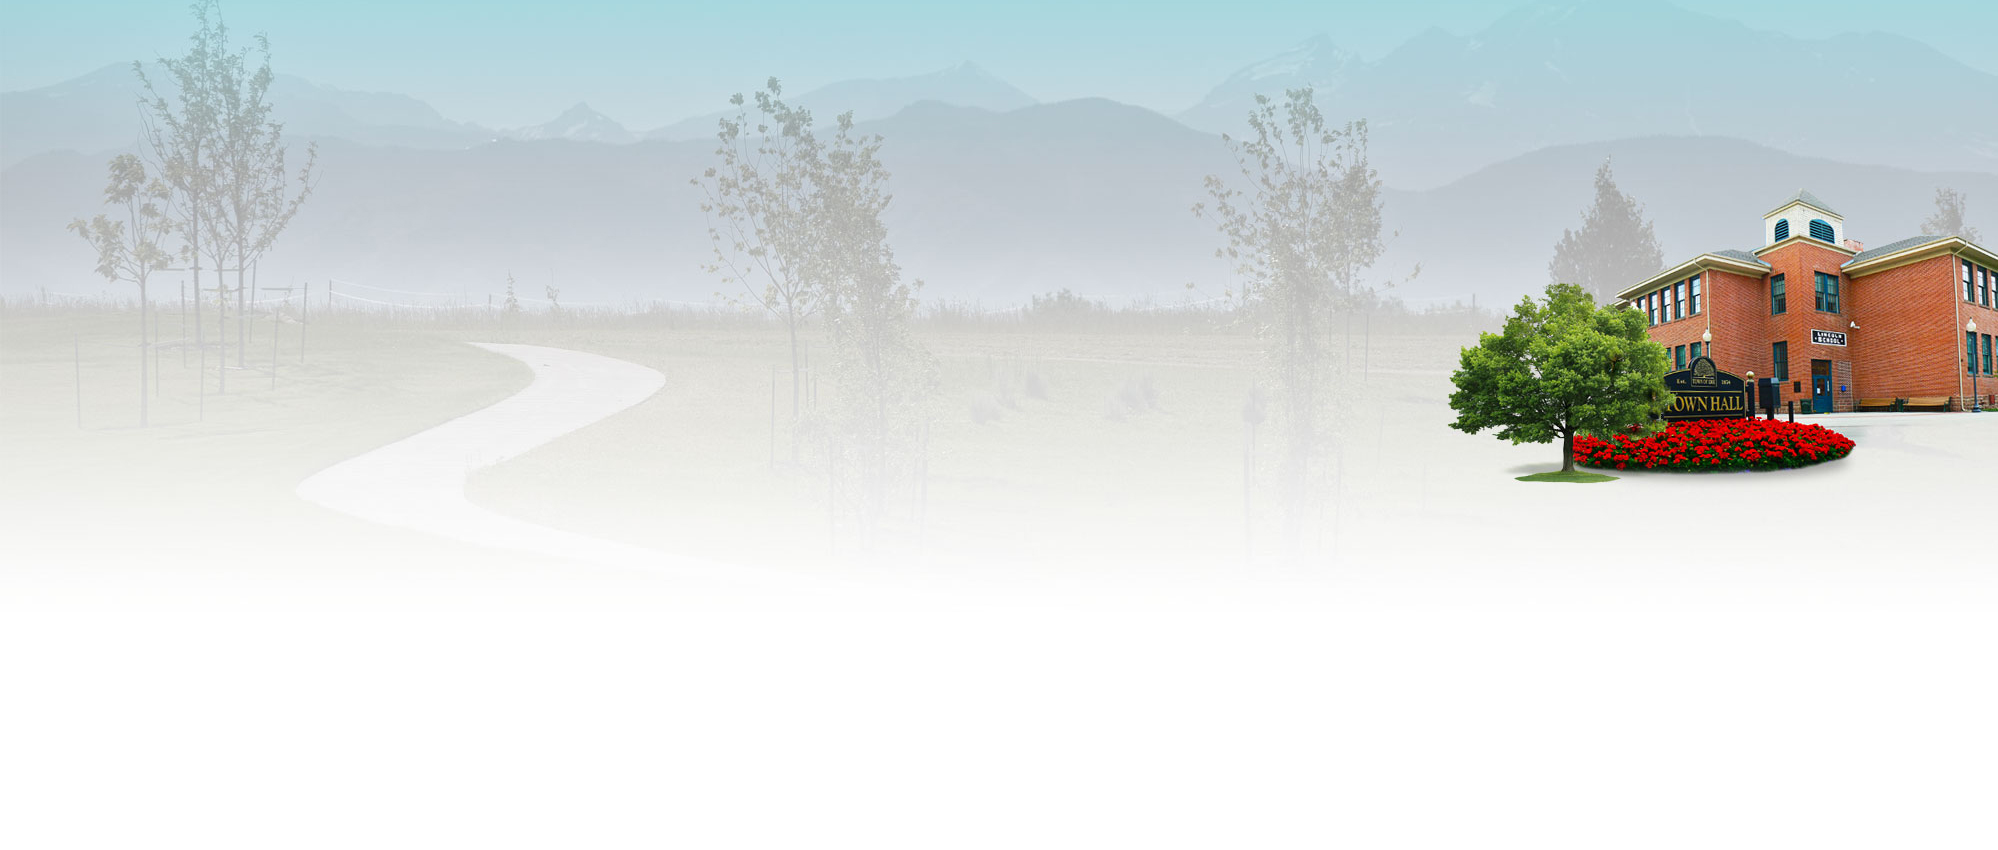 erie co official website background1 background2 background5